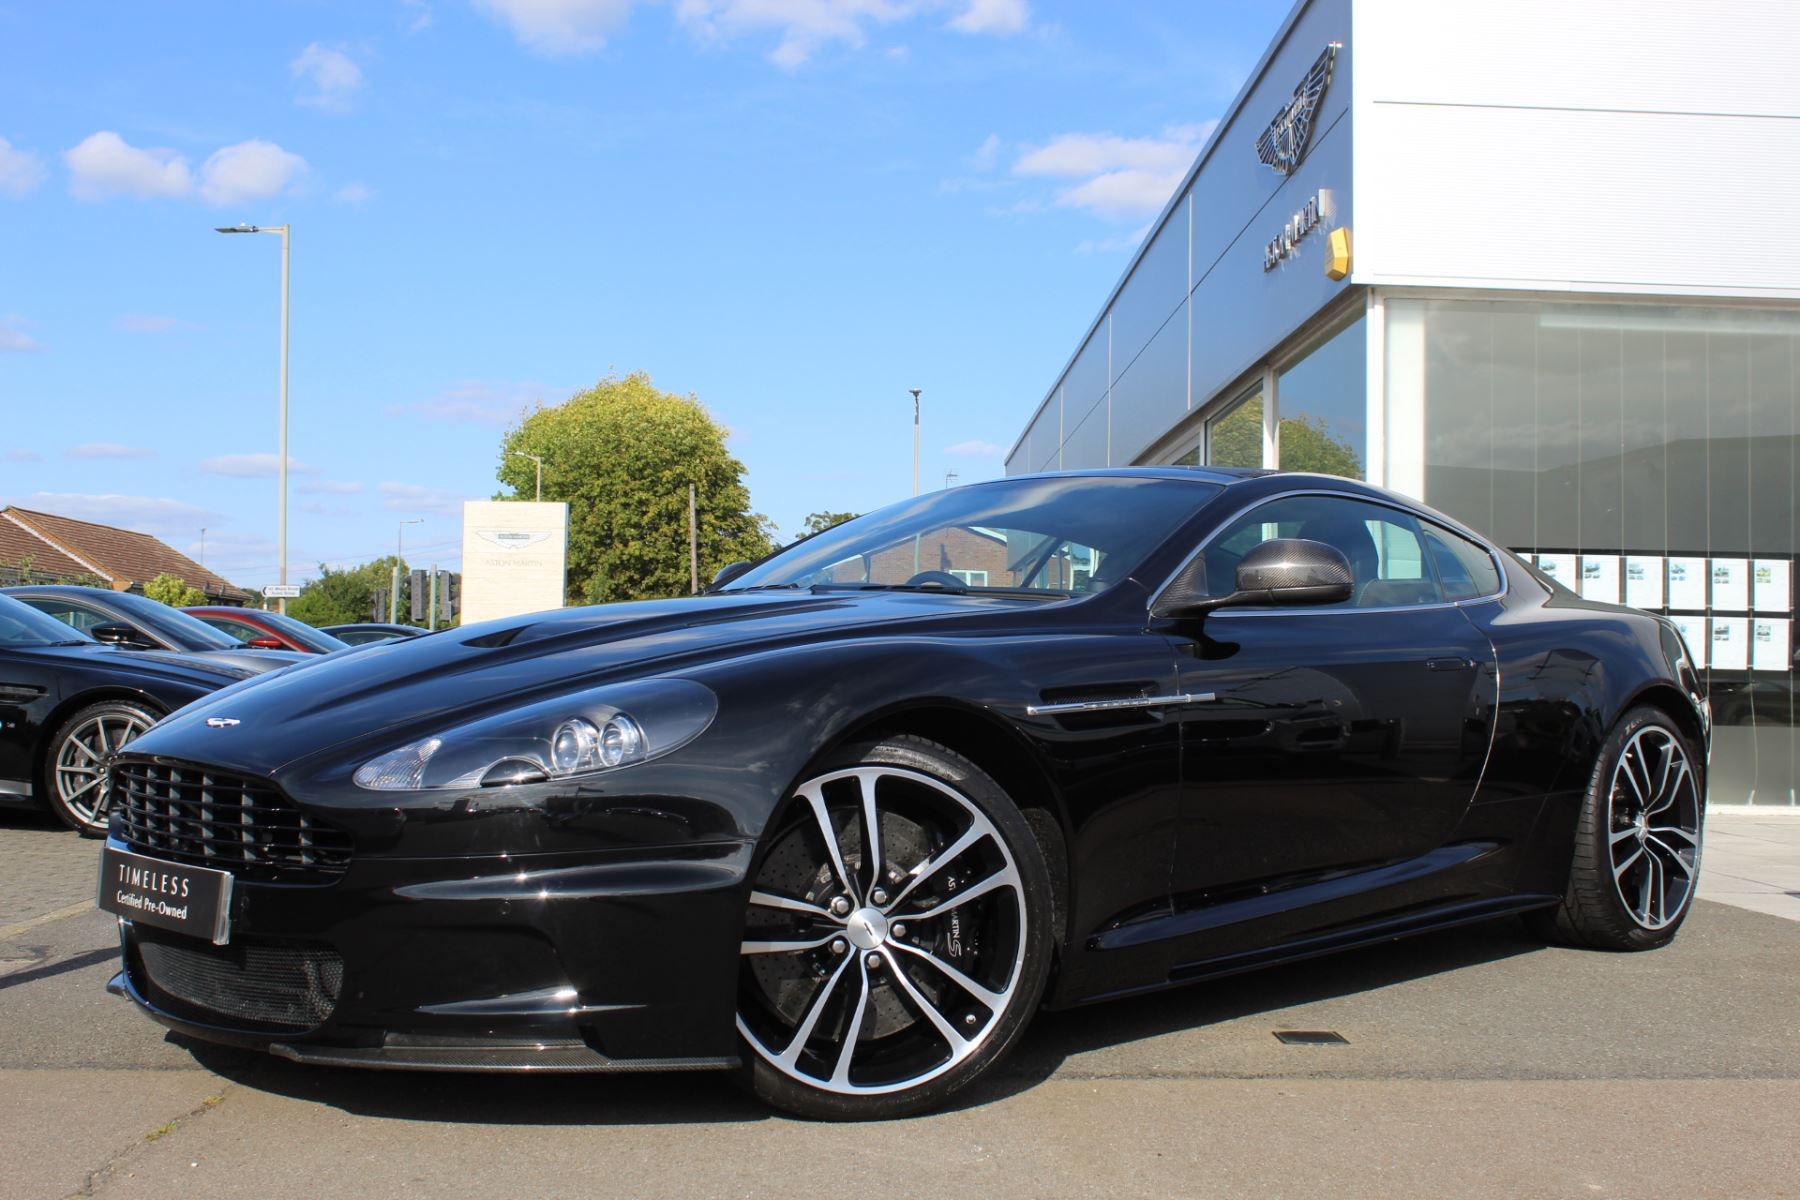 Aston Martin DBS Coupe 6.0 Automatic 2 door (2012) image